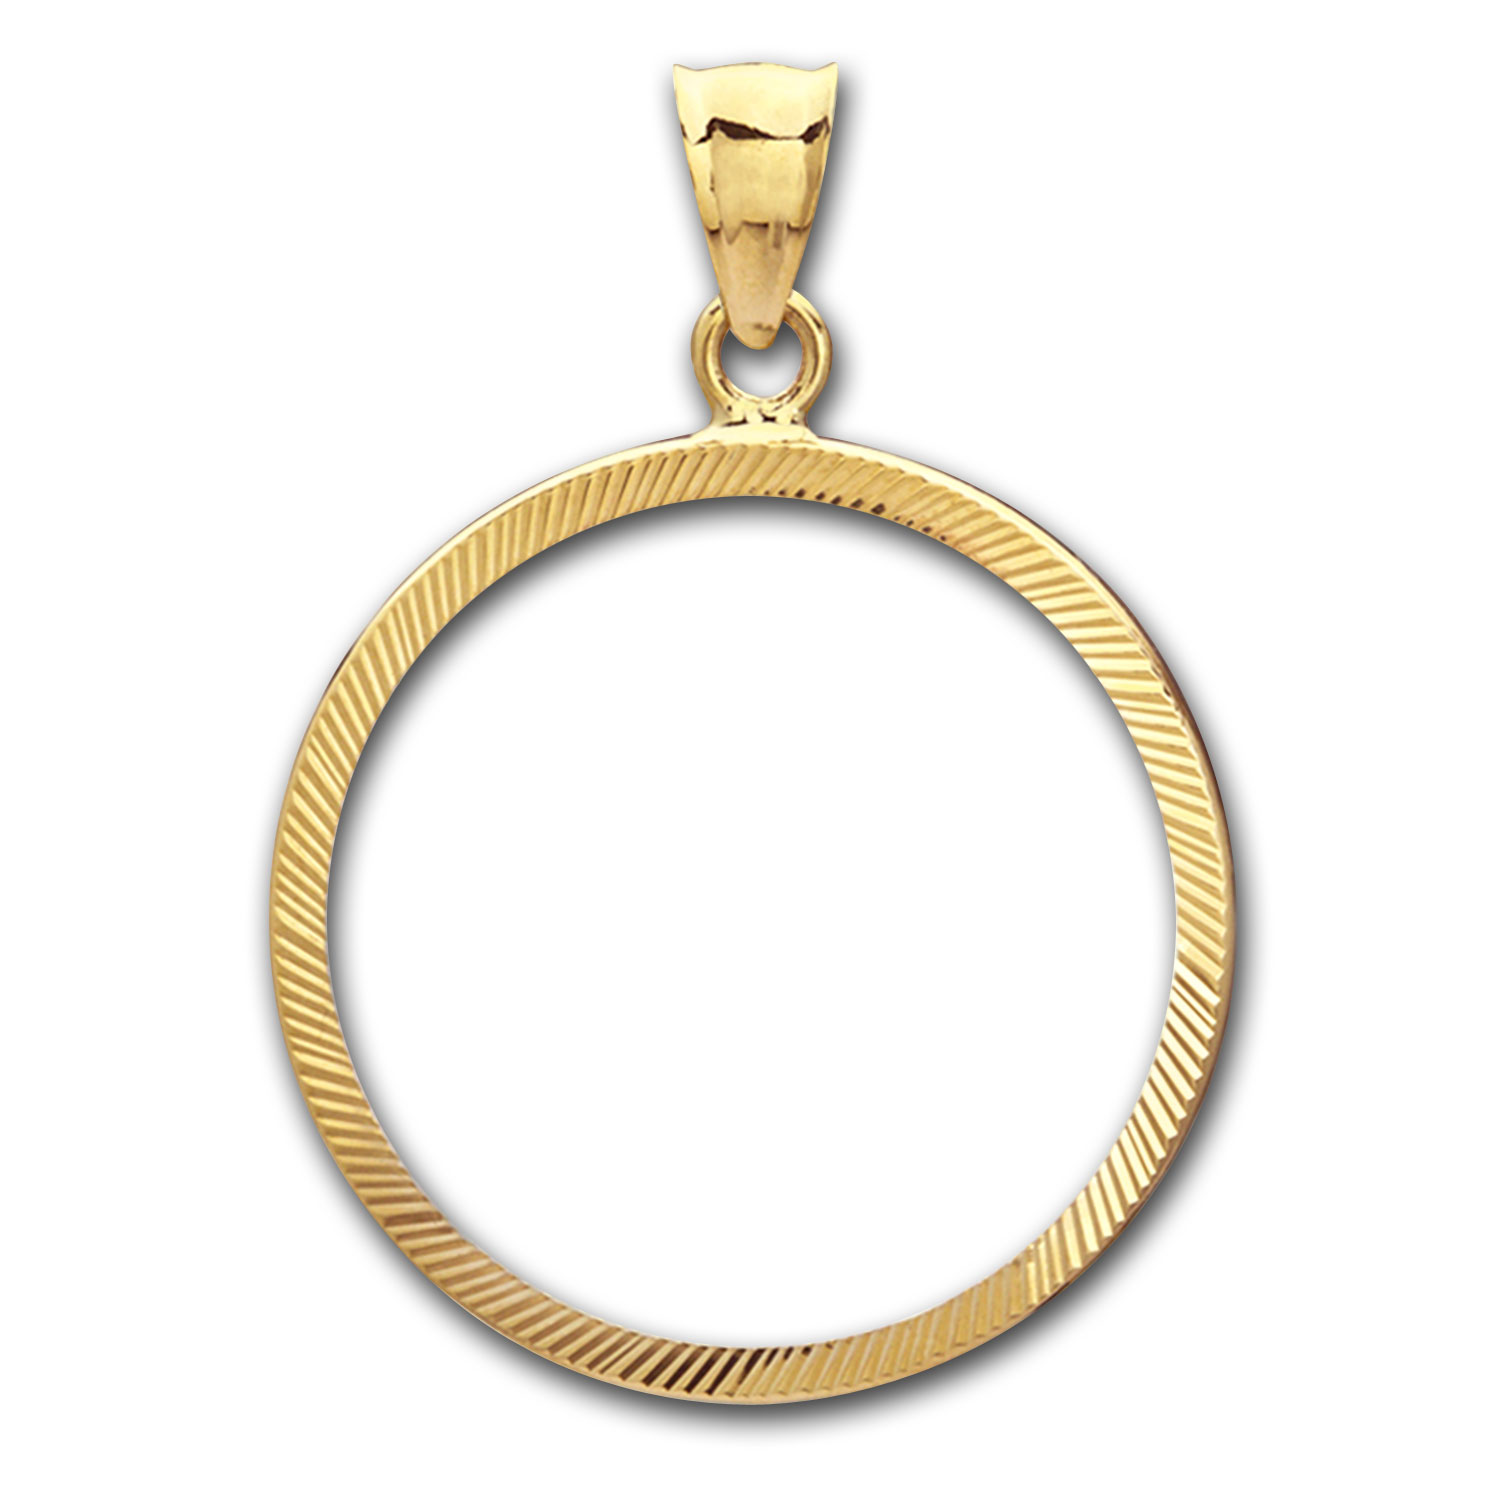 14K Gold Prong Diamond-Cut Coin Bezel - 27 millimeter